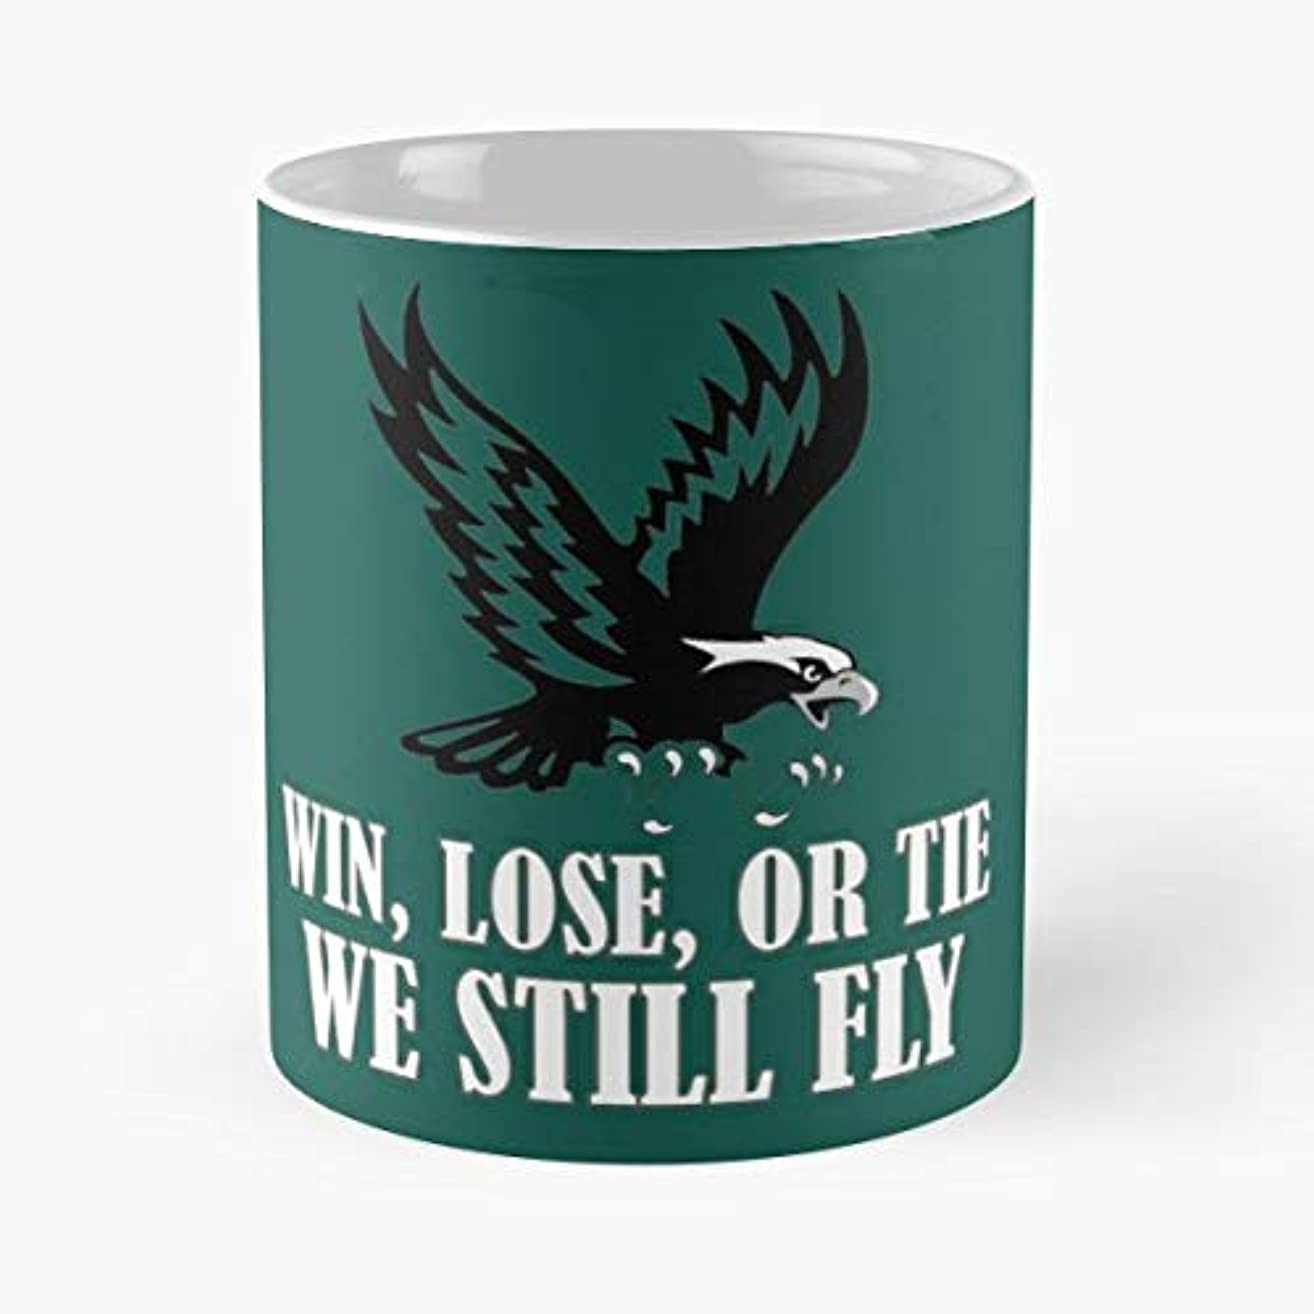 Win Lose Or Tie We Still Fly Philly Randall Donovan Gift Coffee/tea Ceramic Mug Father Day